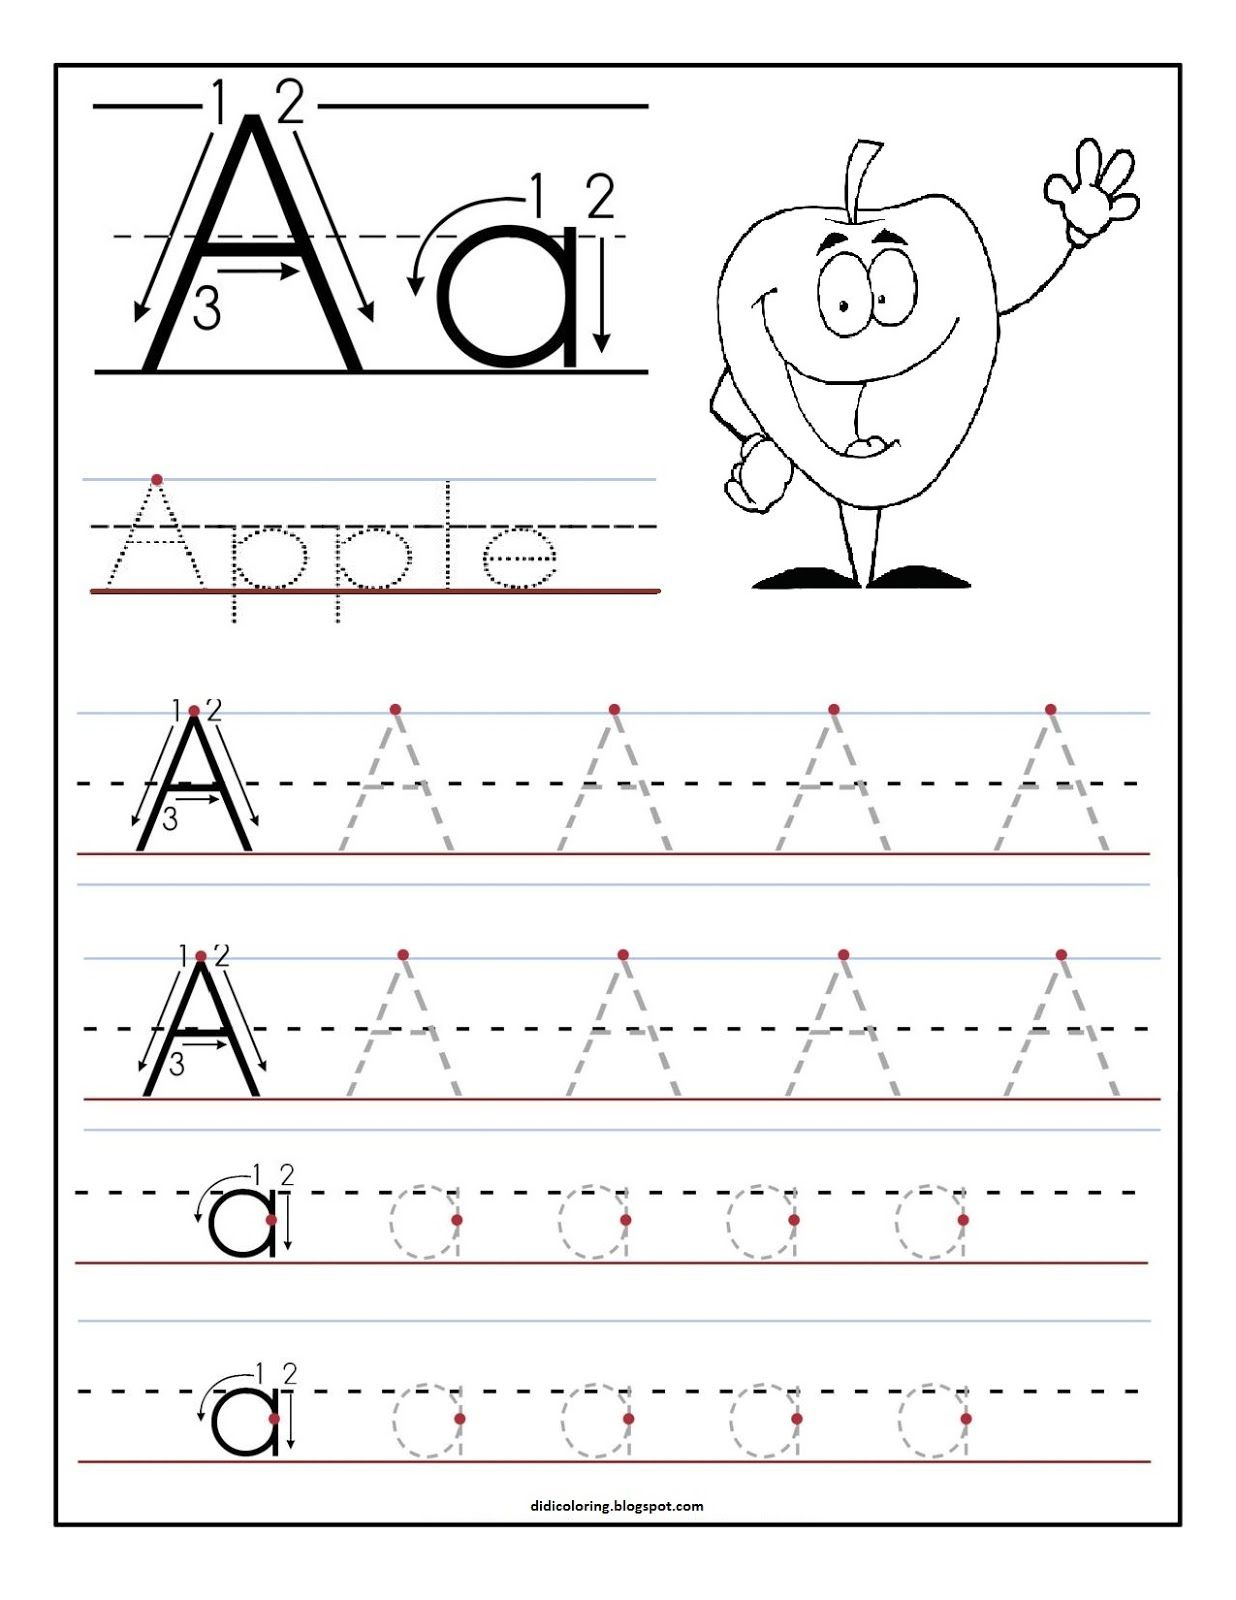 Free Printable Worksheet Letter A For Your Child To Learn And Write - Free Printable Alphabet Pages